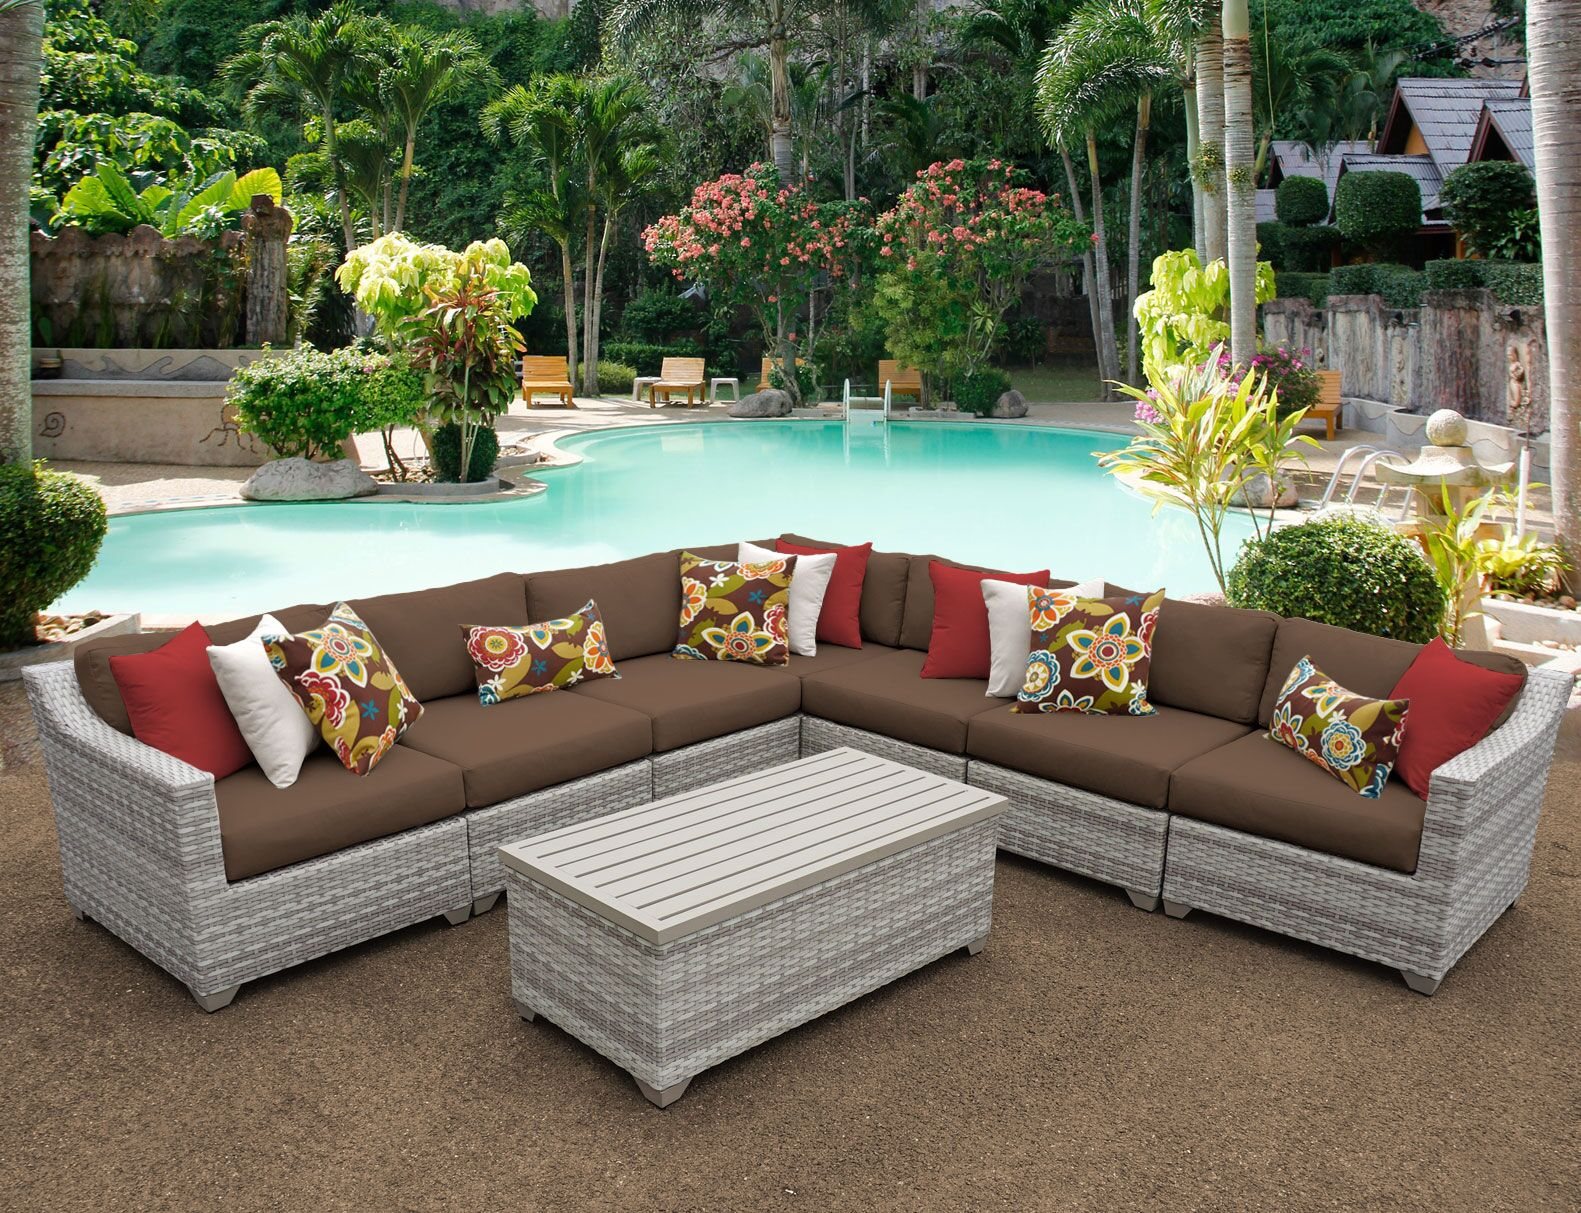 Ansonia 8 Piece Sectional Set with Cushions Color: Cocoa